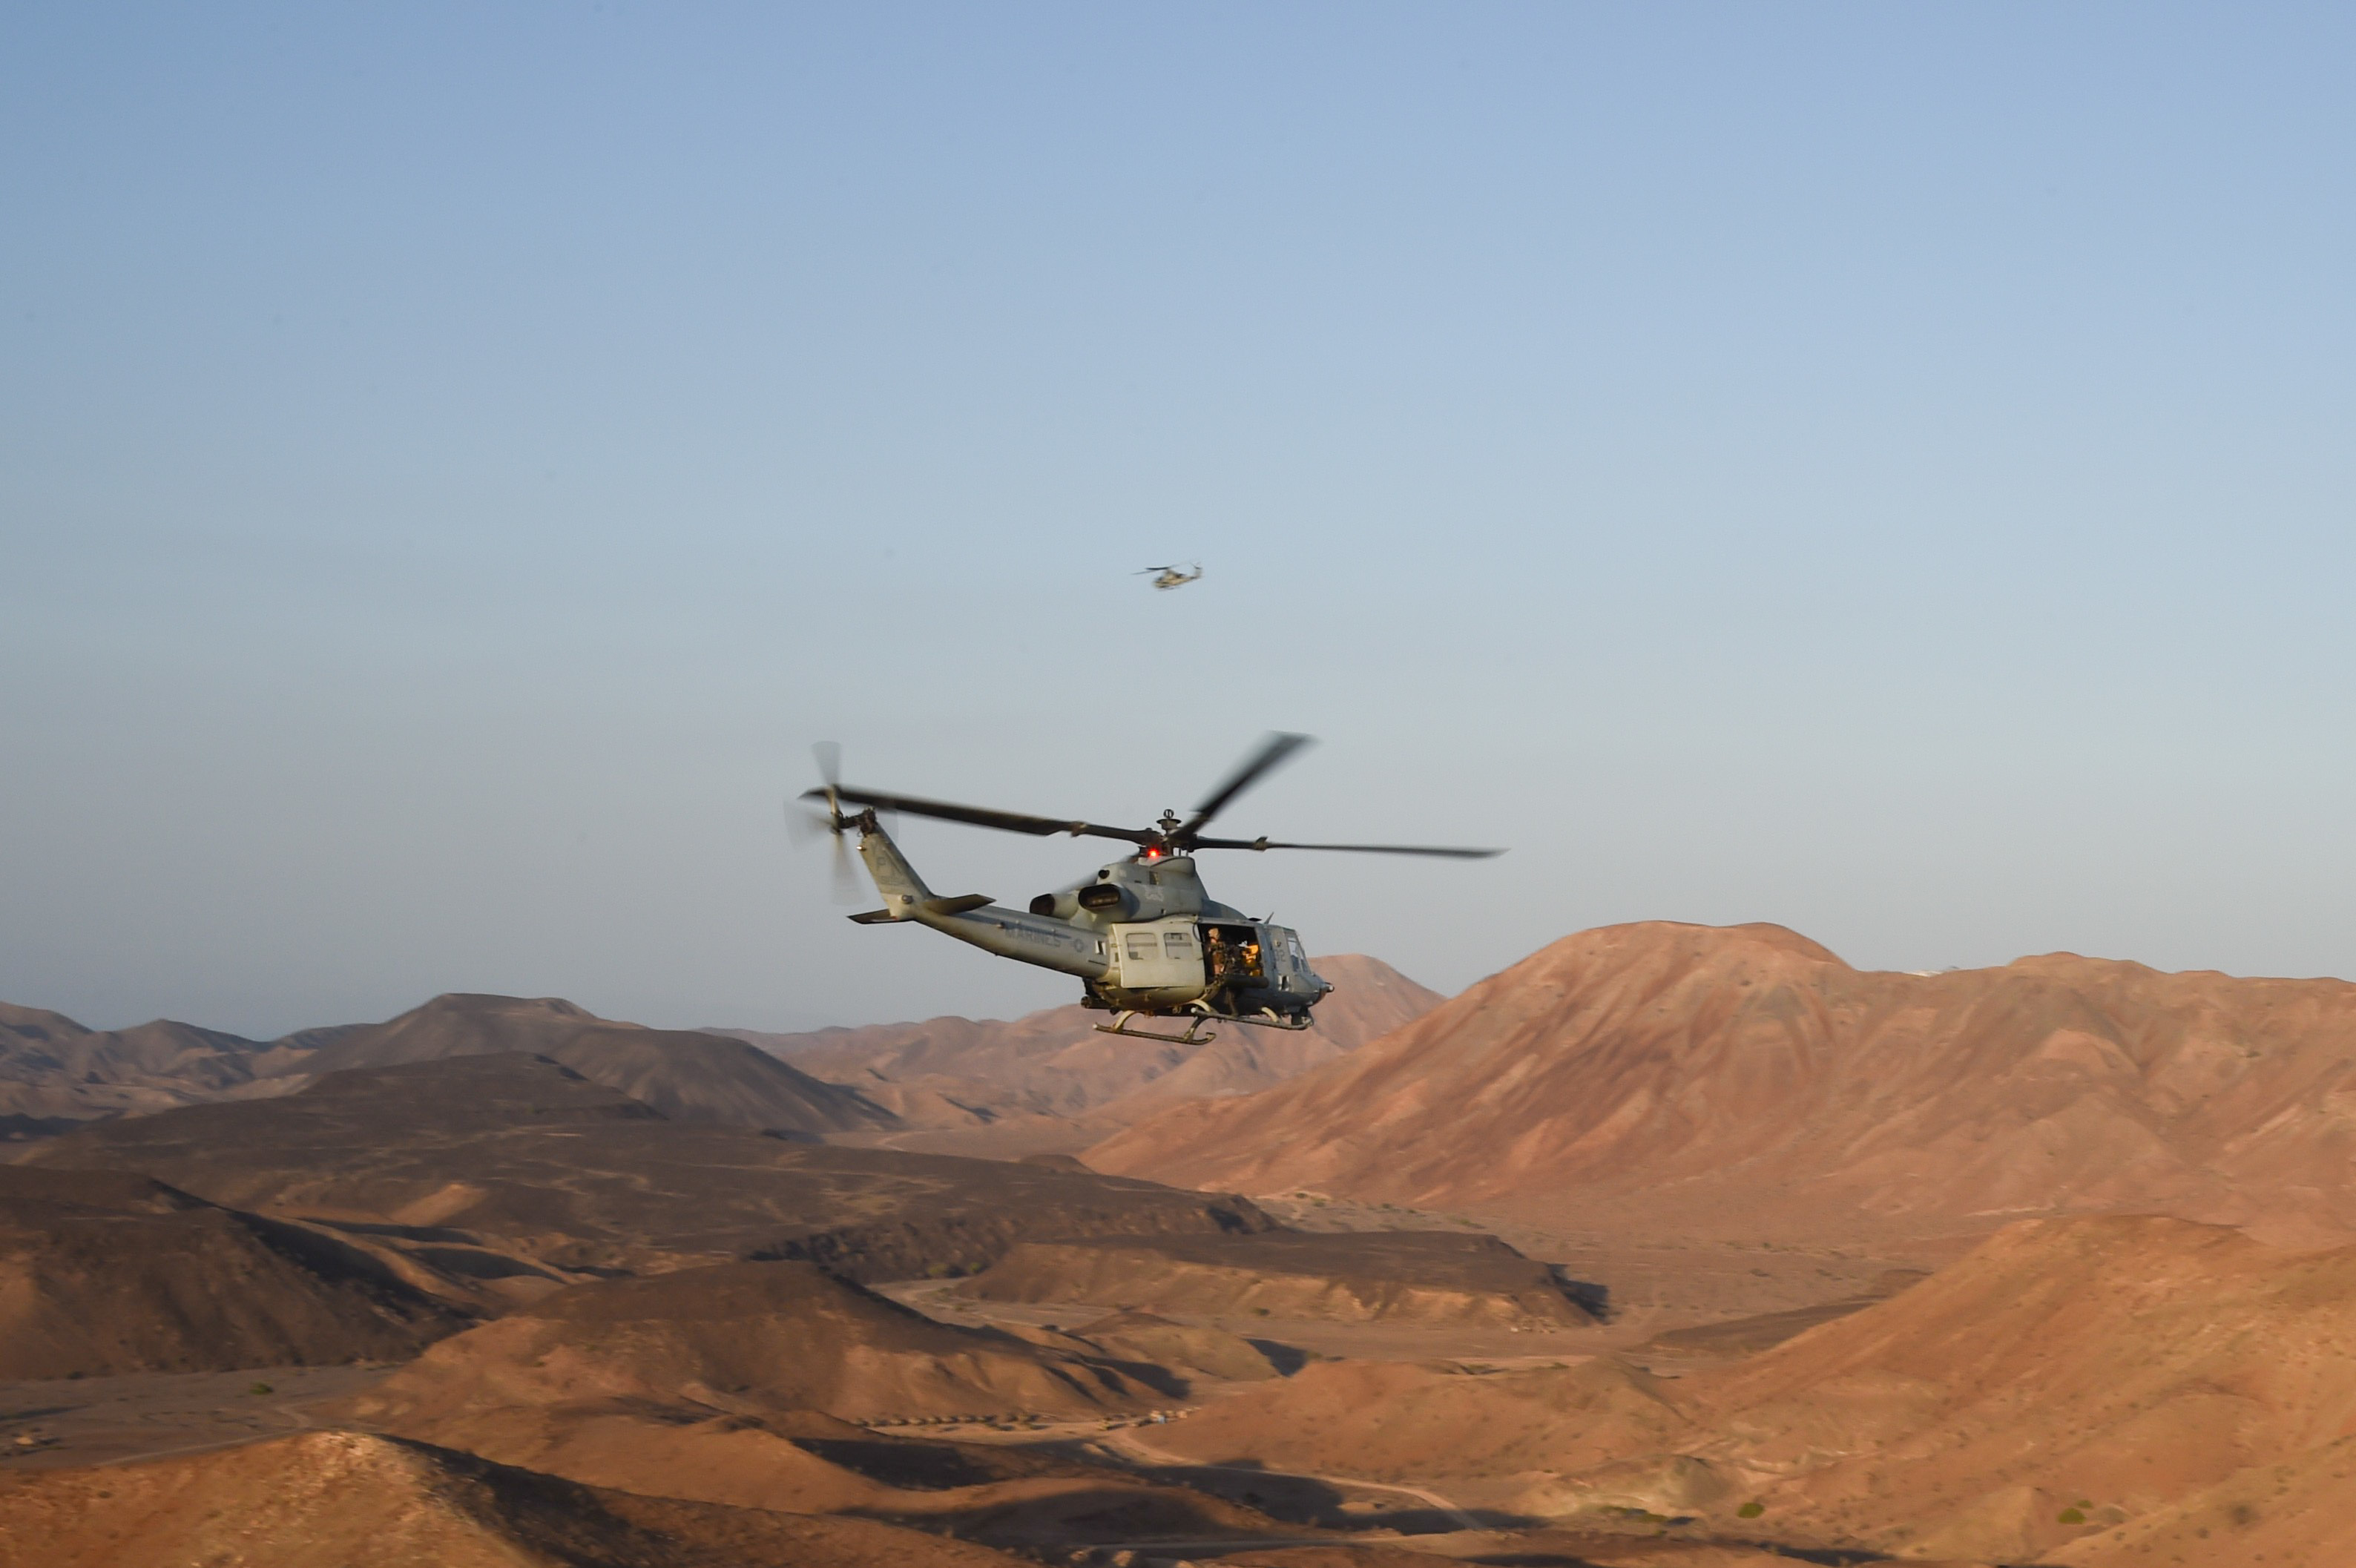 A UH-1Y Huey helicopter flies over the range after a helo-borne raid during Exercise Alligator Dagger, Dec. 18, 2016, at Arta Plage, Djibouti. The exercise allows opportunities for the 11th MEU to maintain their respective skills and proficiencies while intermittently participating in bilateral training with the French. (U.S. Air National Guard photo by Staff Sgt. Penny Snoozy)